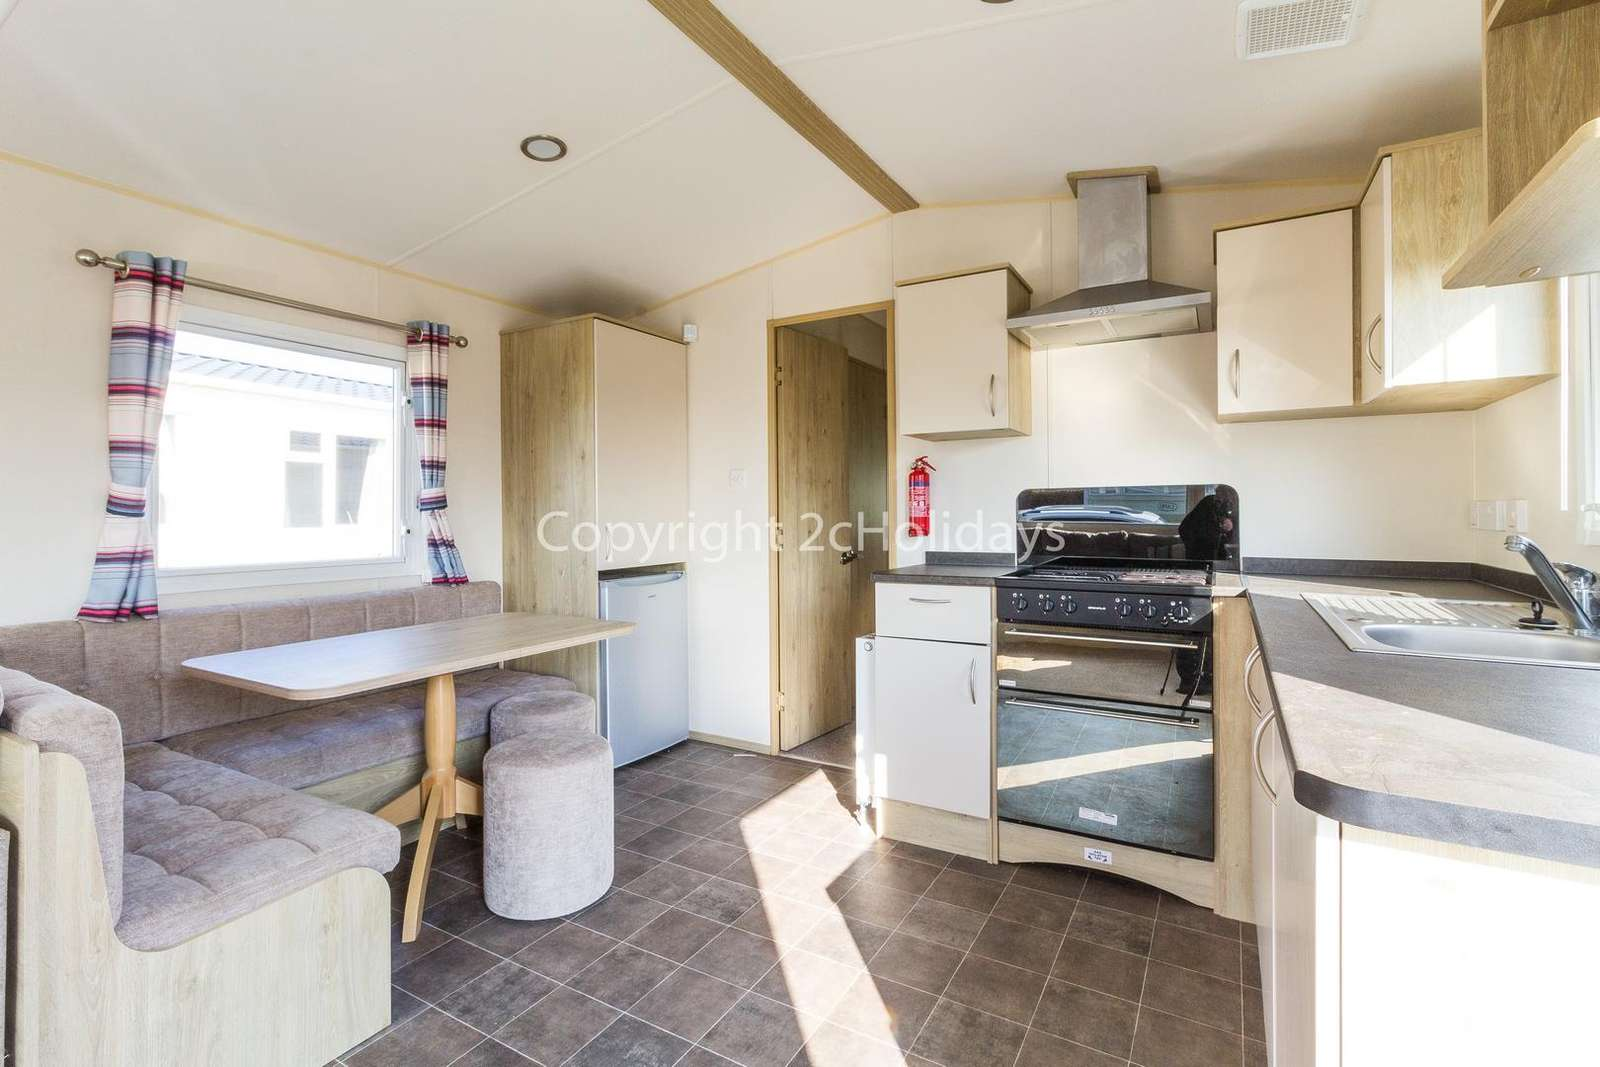 Open plan kitchen/diner, great for self-catering breaks!